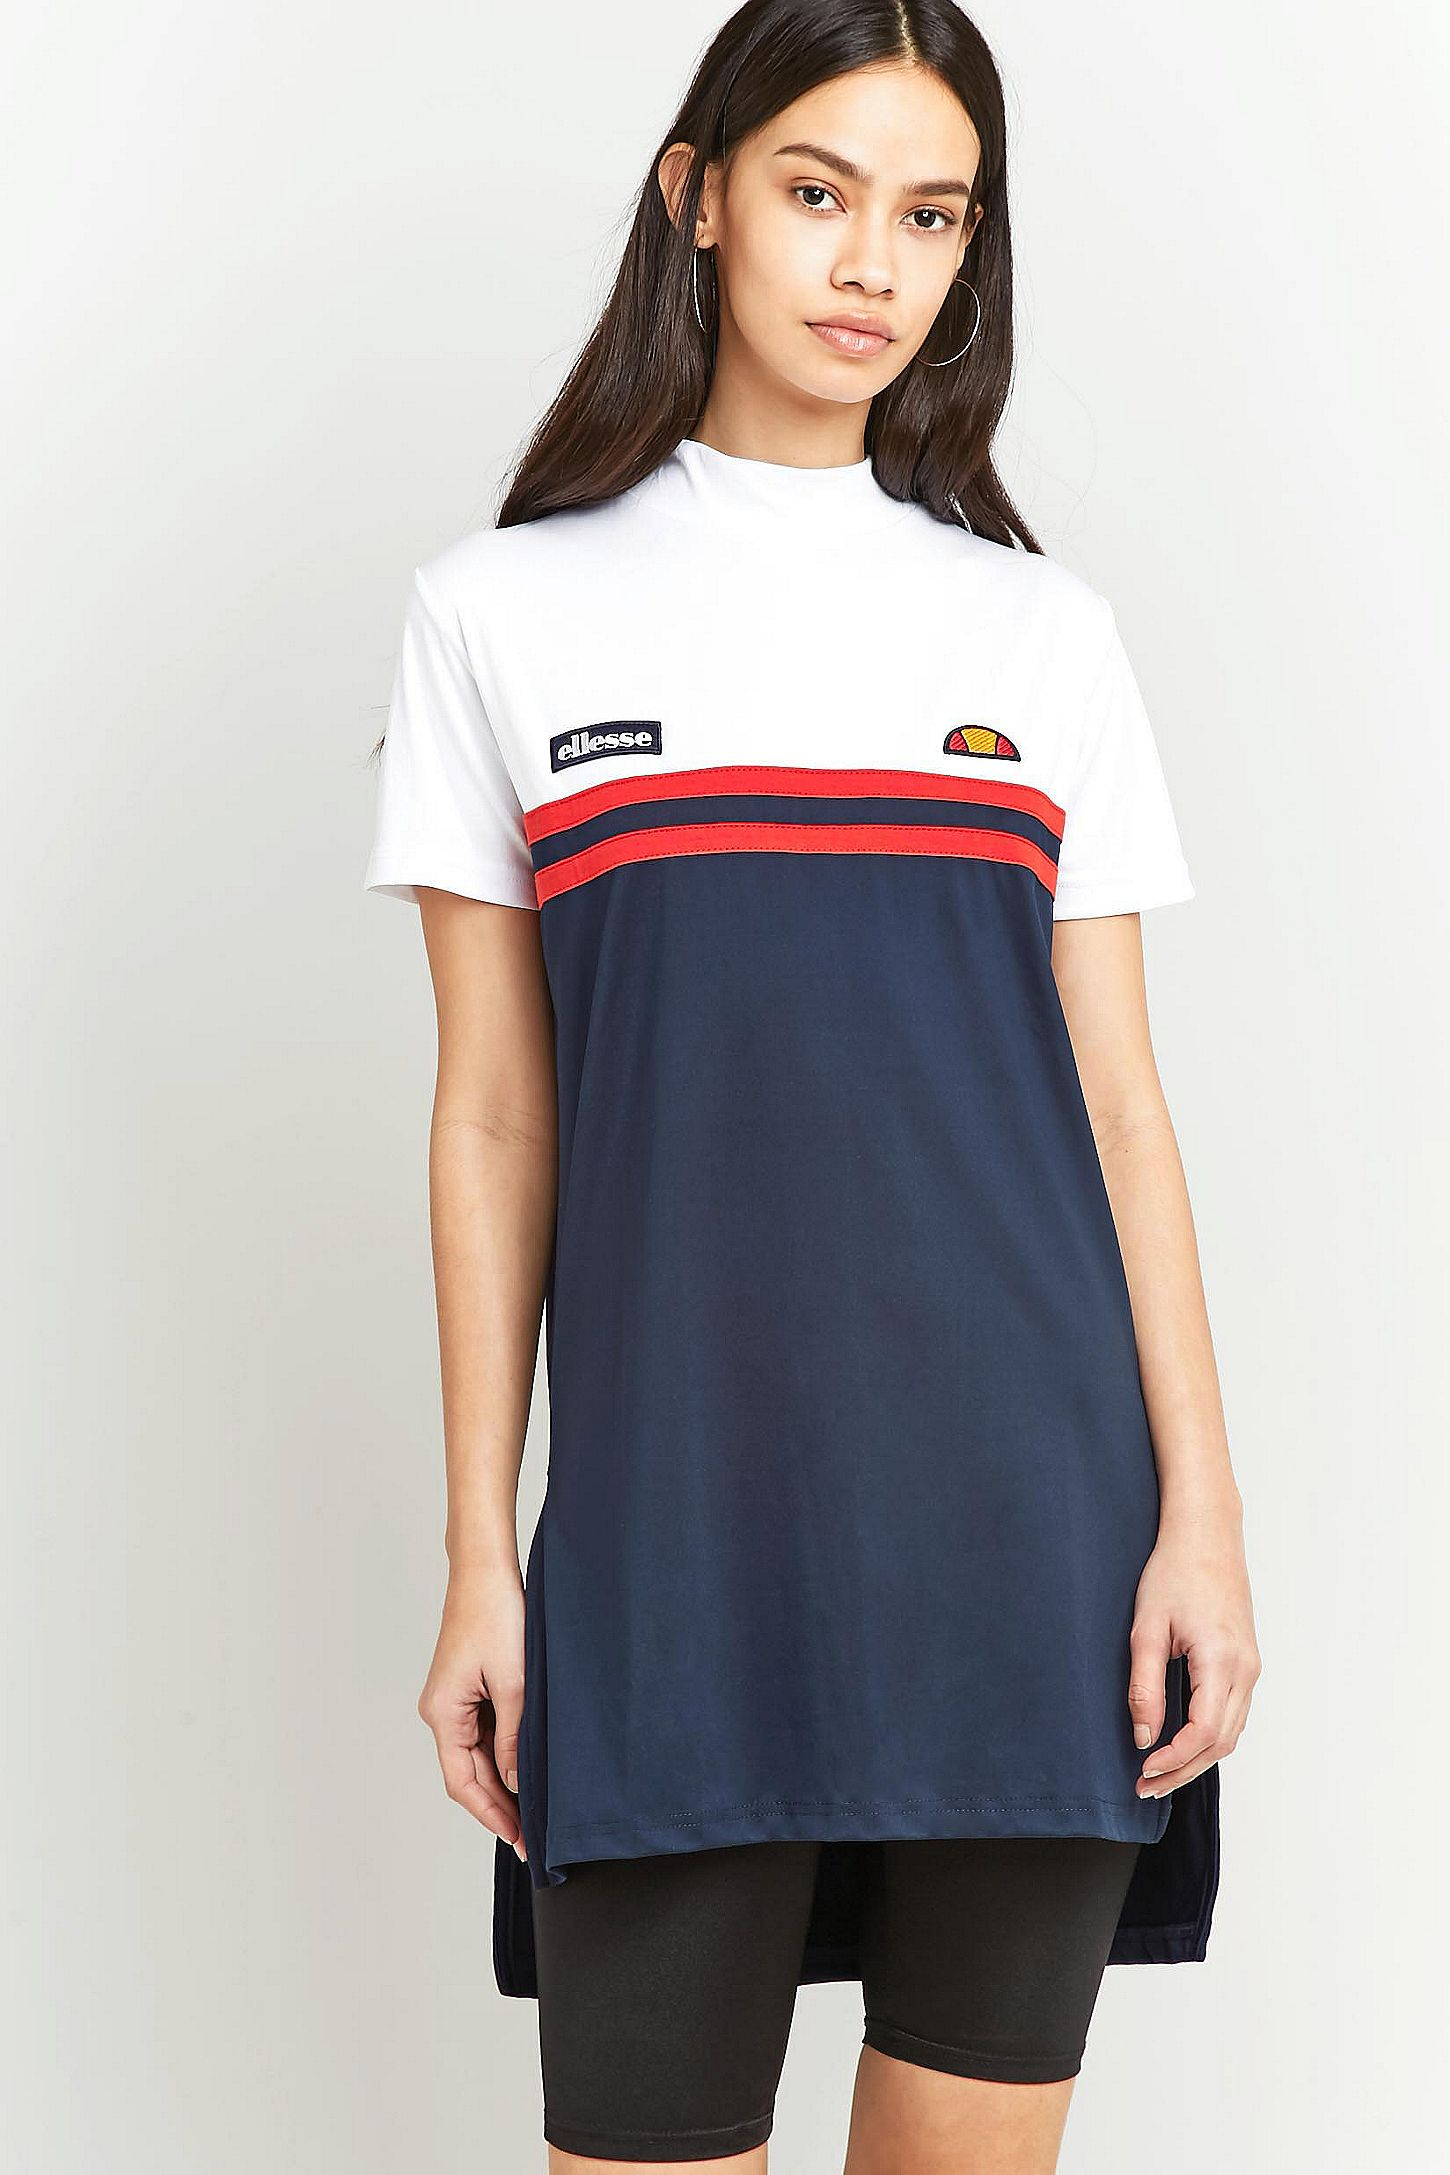 b9094d57db4 Ellesse Silko T-Shirt Dress